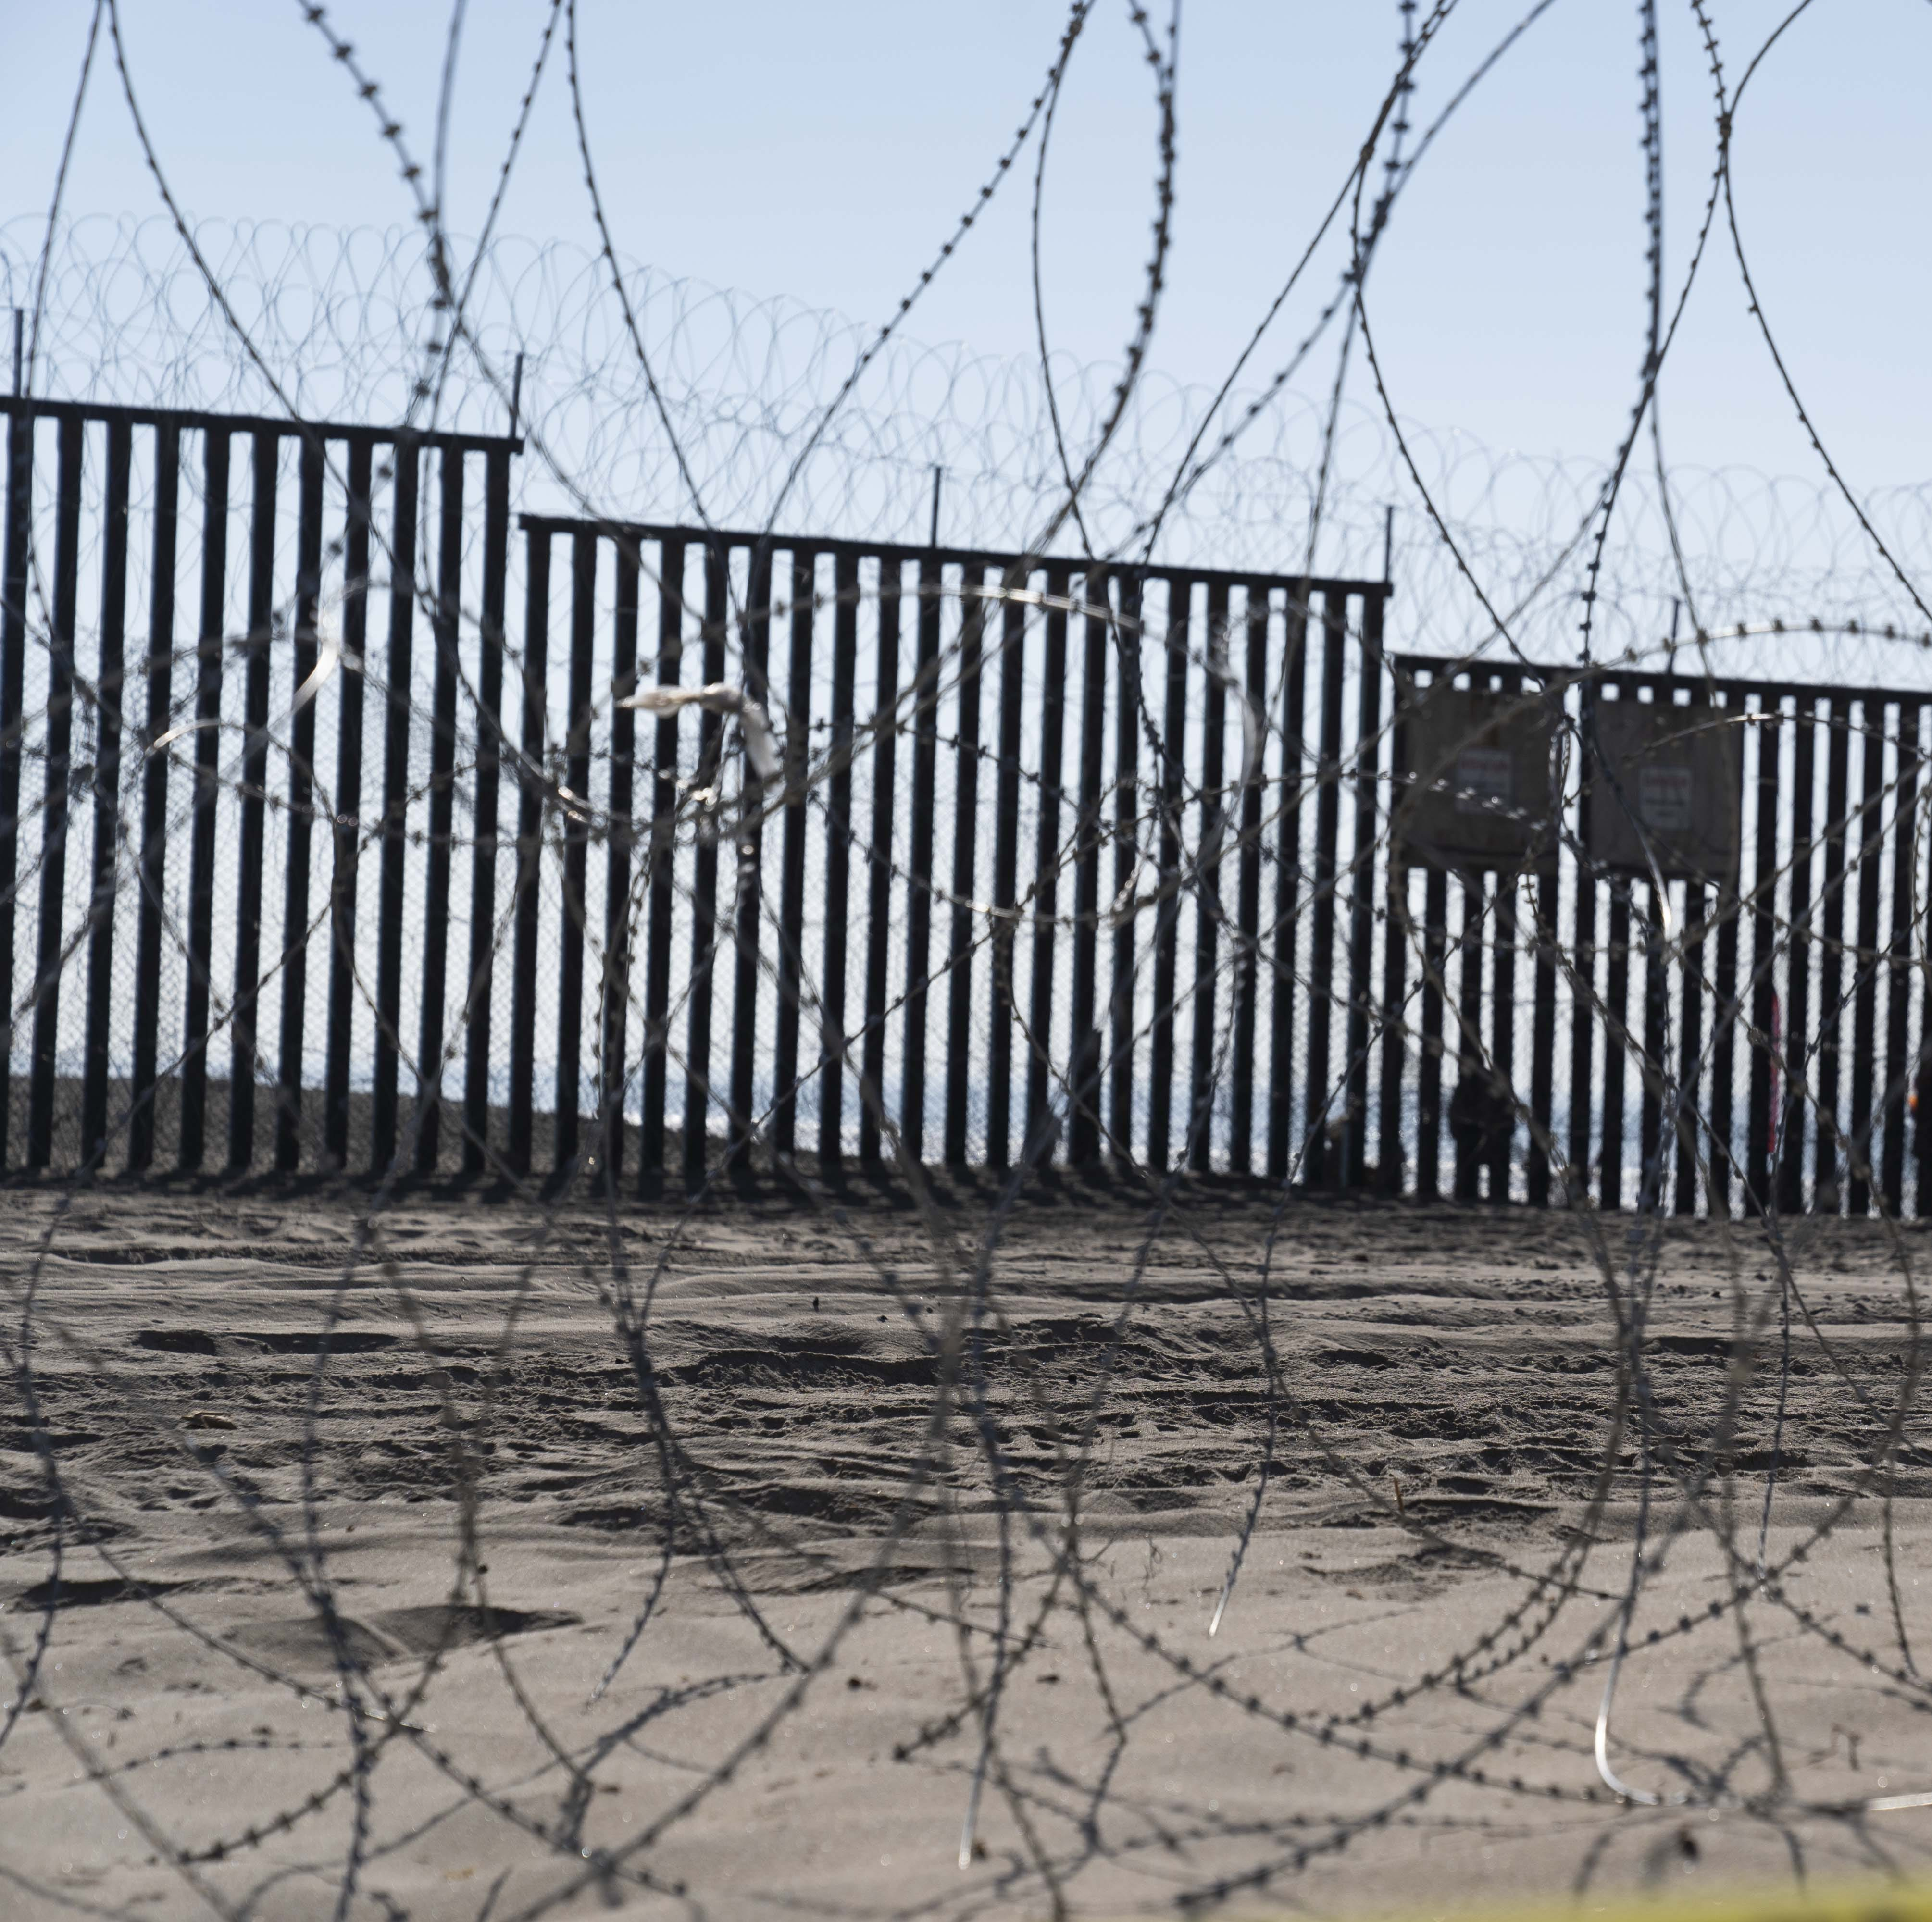 Arizona legislator has a genius plan to fund the border wall: tax porn